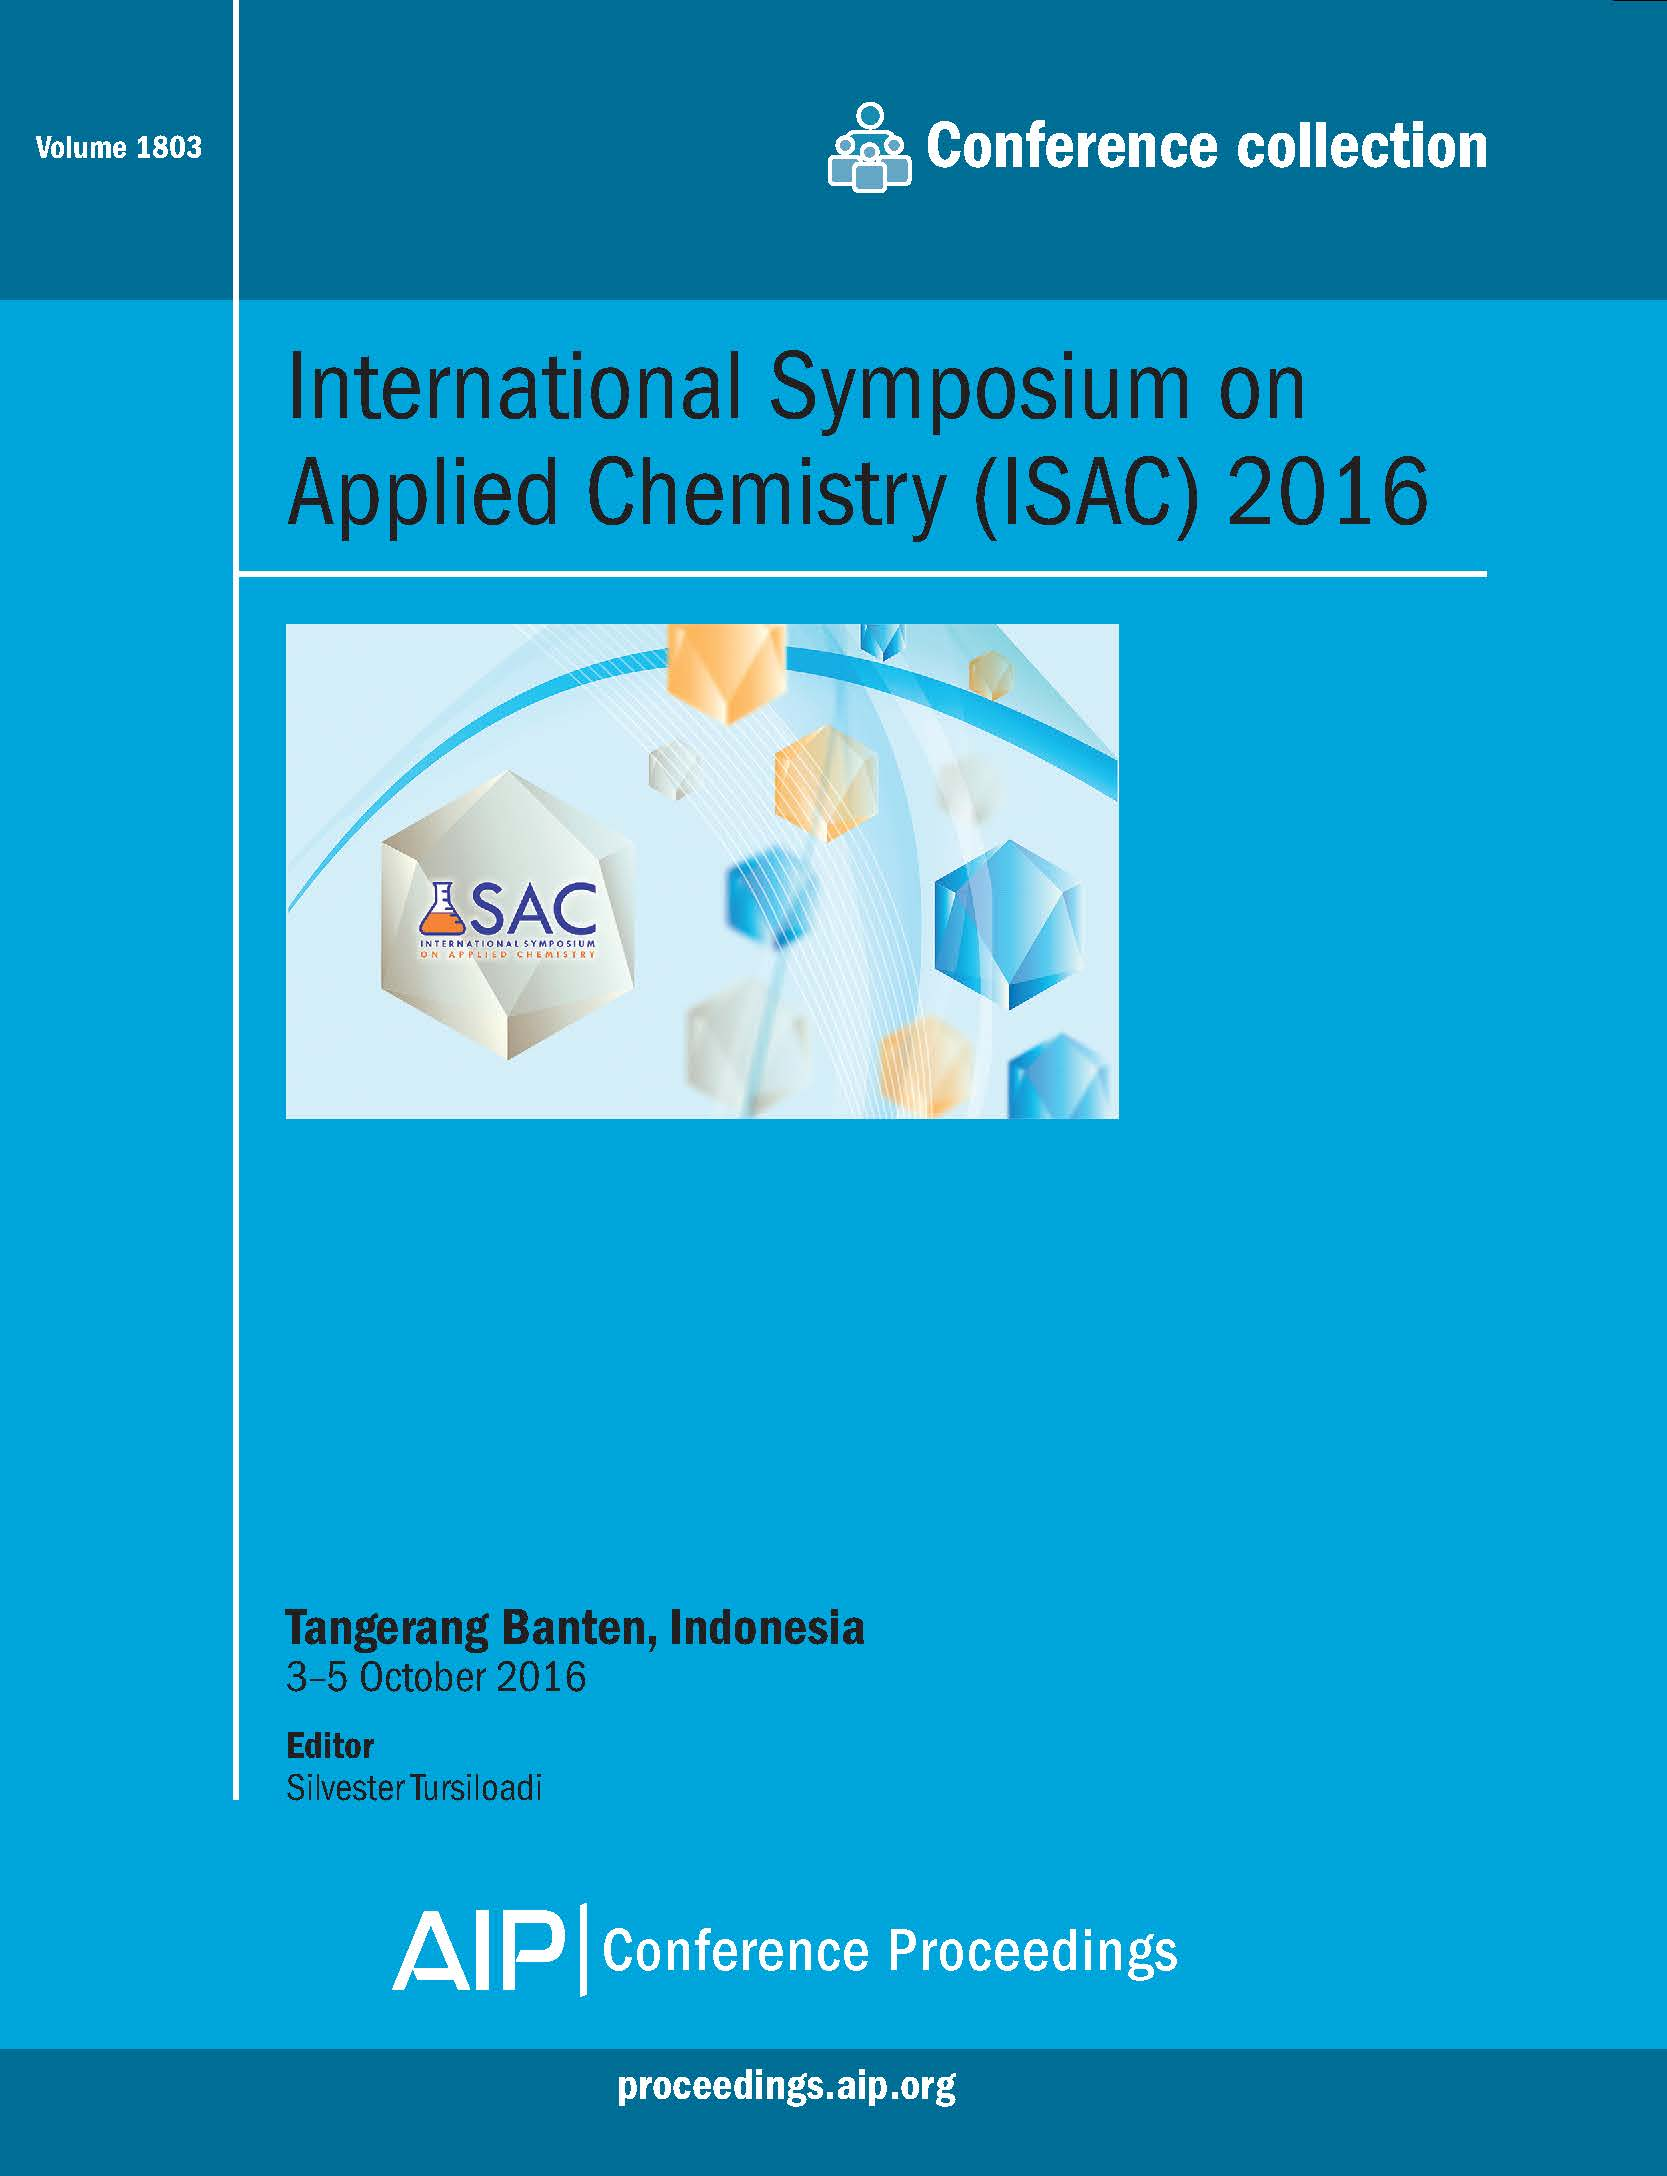 Volume 1803: International Symposium on Applied Chemistry (ISAC